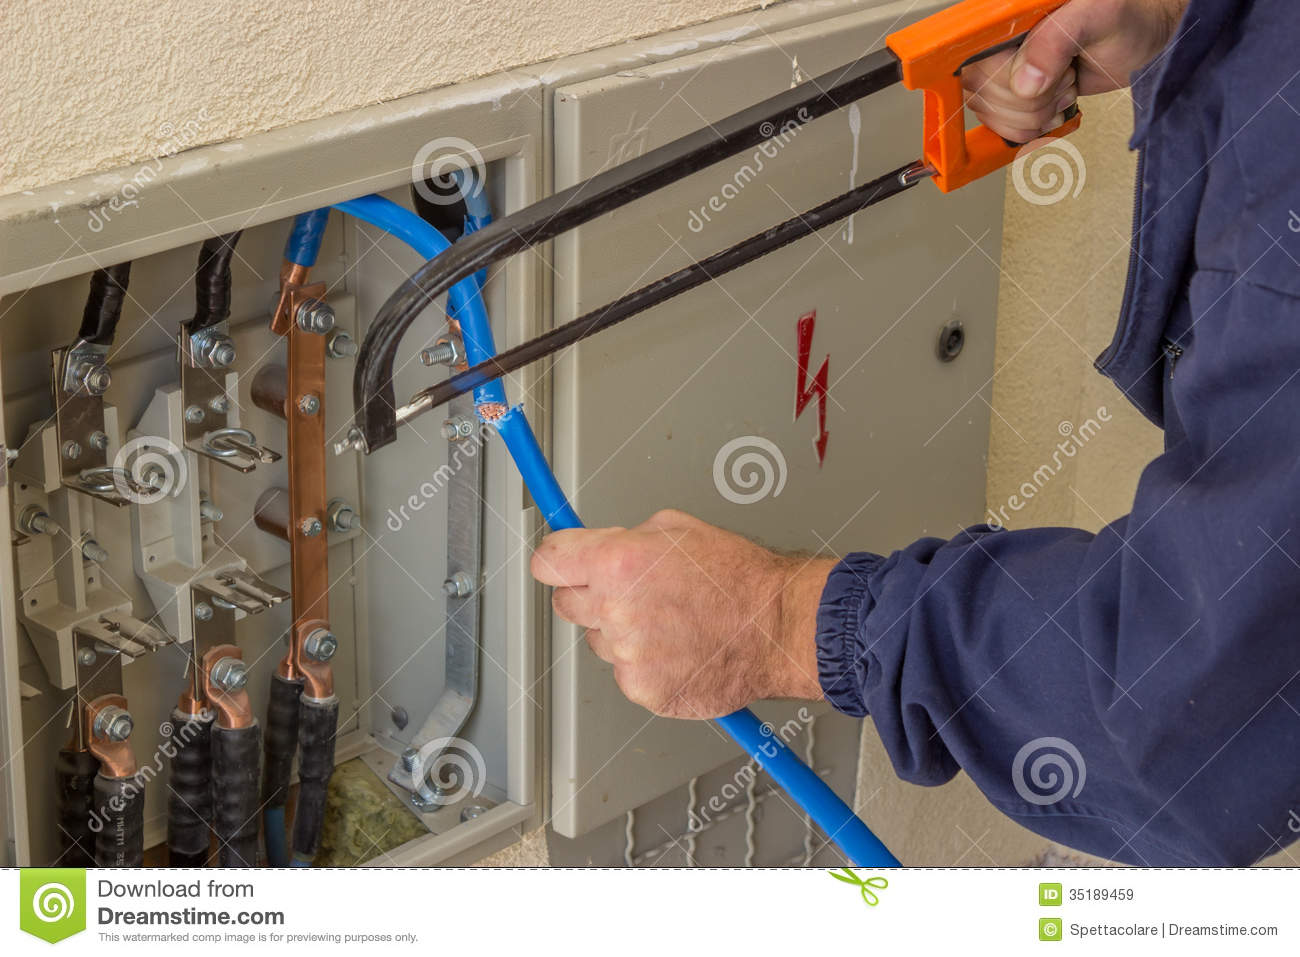 Three Phase Fuse Box Wiring Diagram House Libraryelectrician Working With A Chainsaw In The Electrical Cabinet